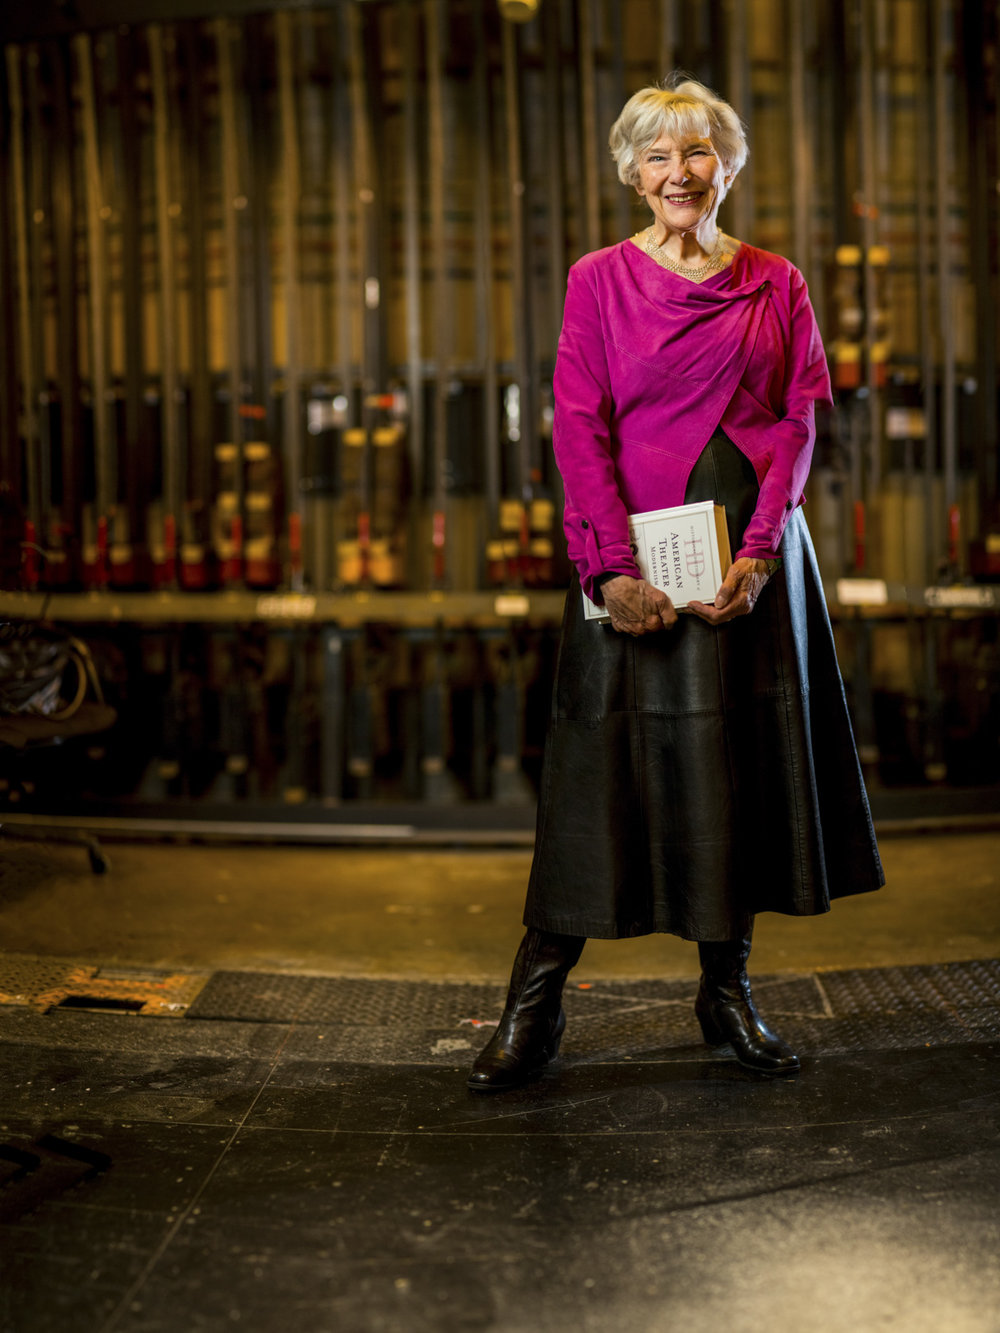 Professor Felcia Londre photographed backstage at the KC Rep Spencer Theater. Created for UMKC.